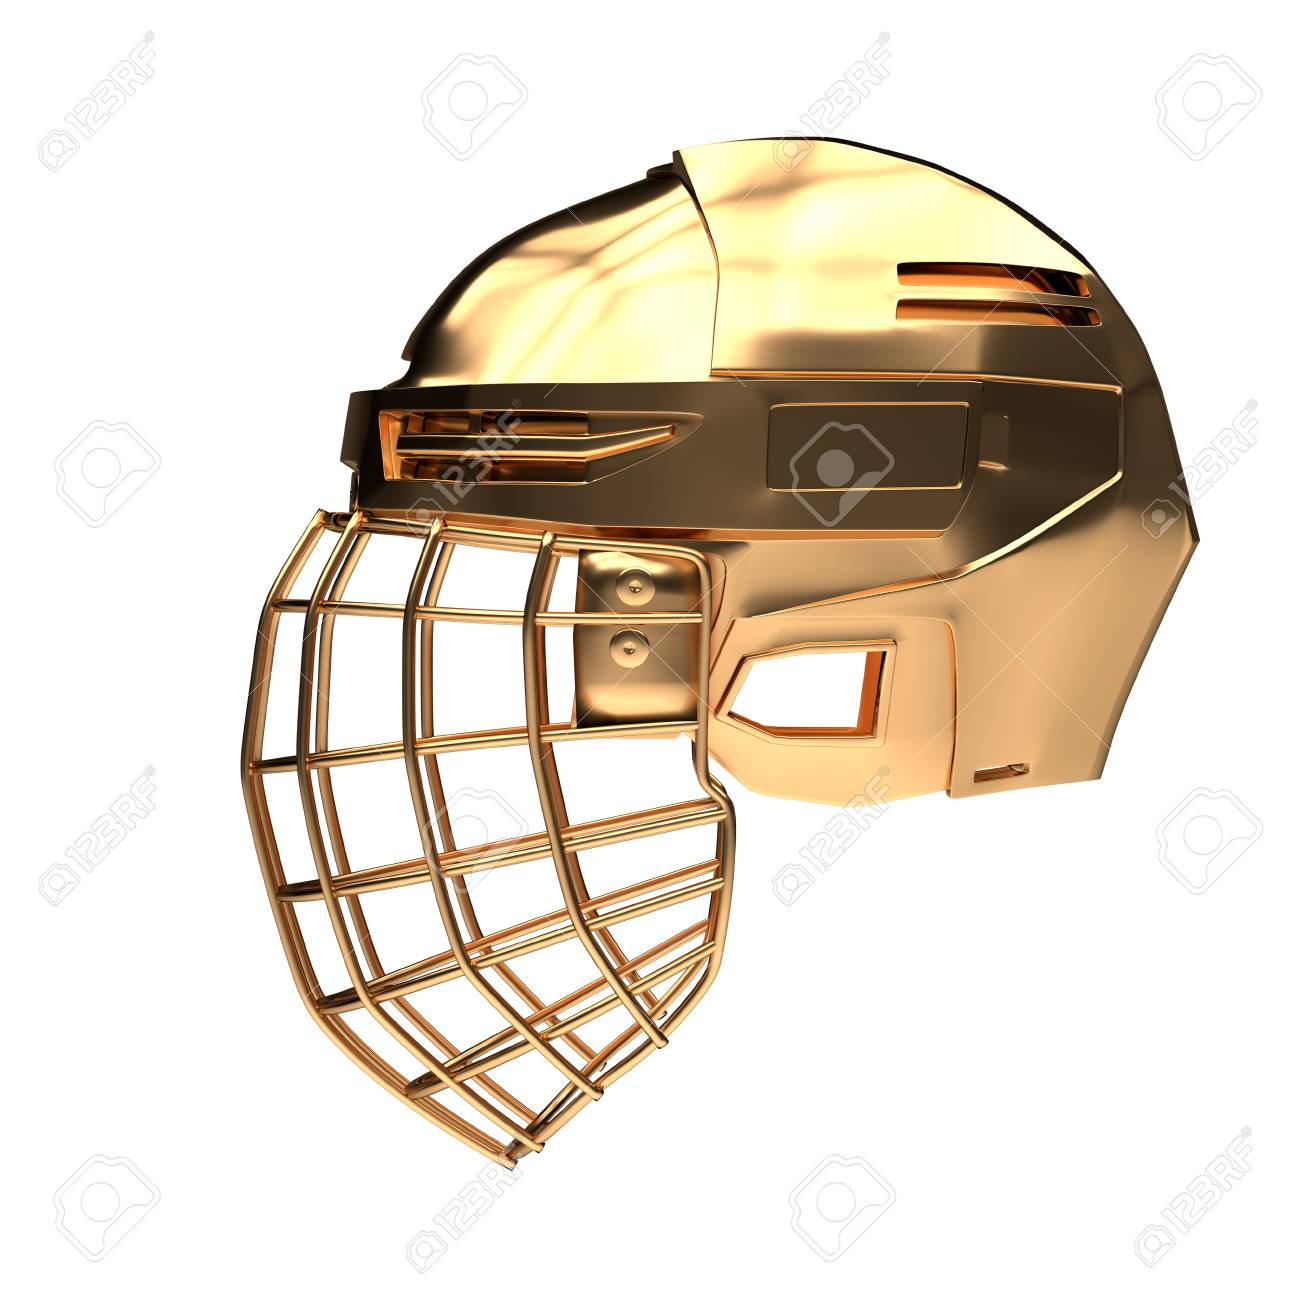 Golden Ice Hockey Helmet Side View Cup And Competition Equipment